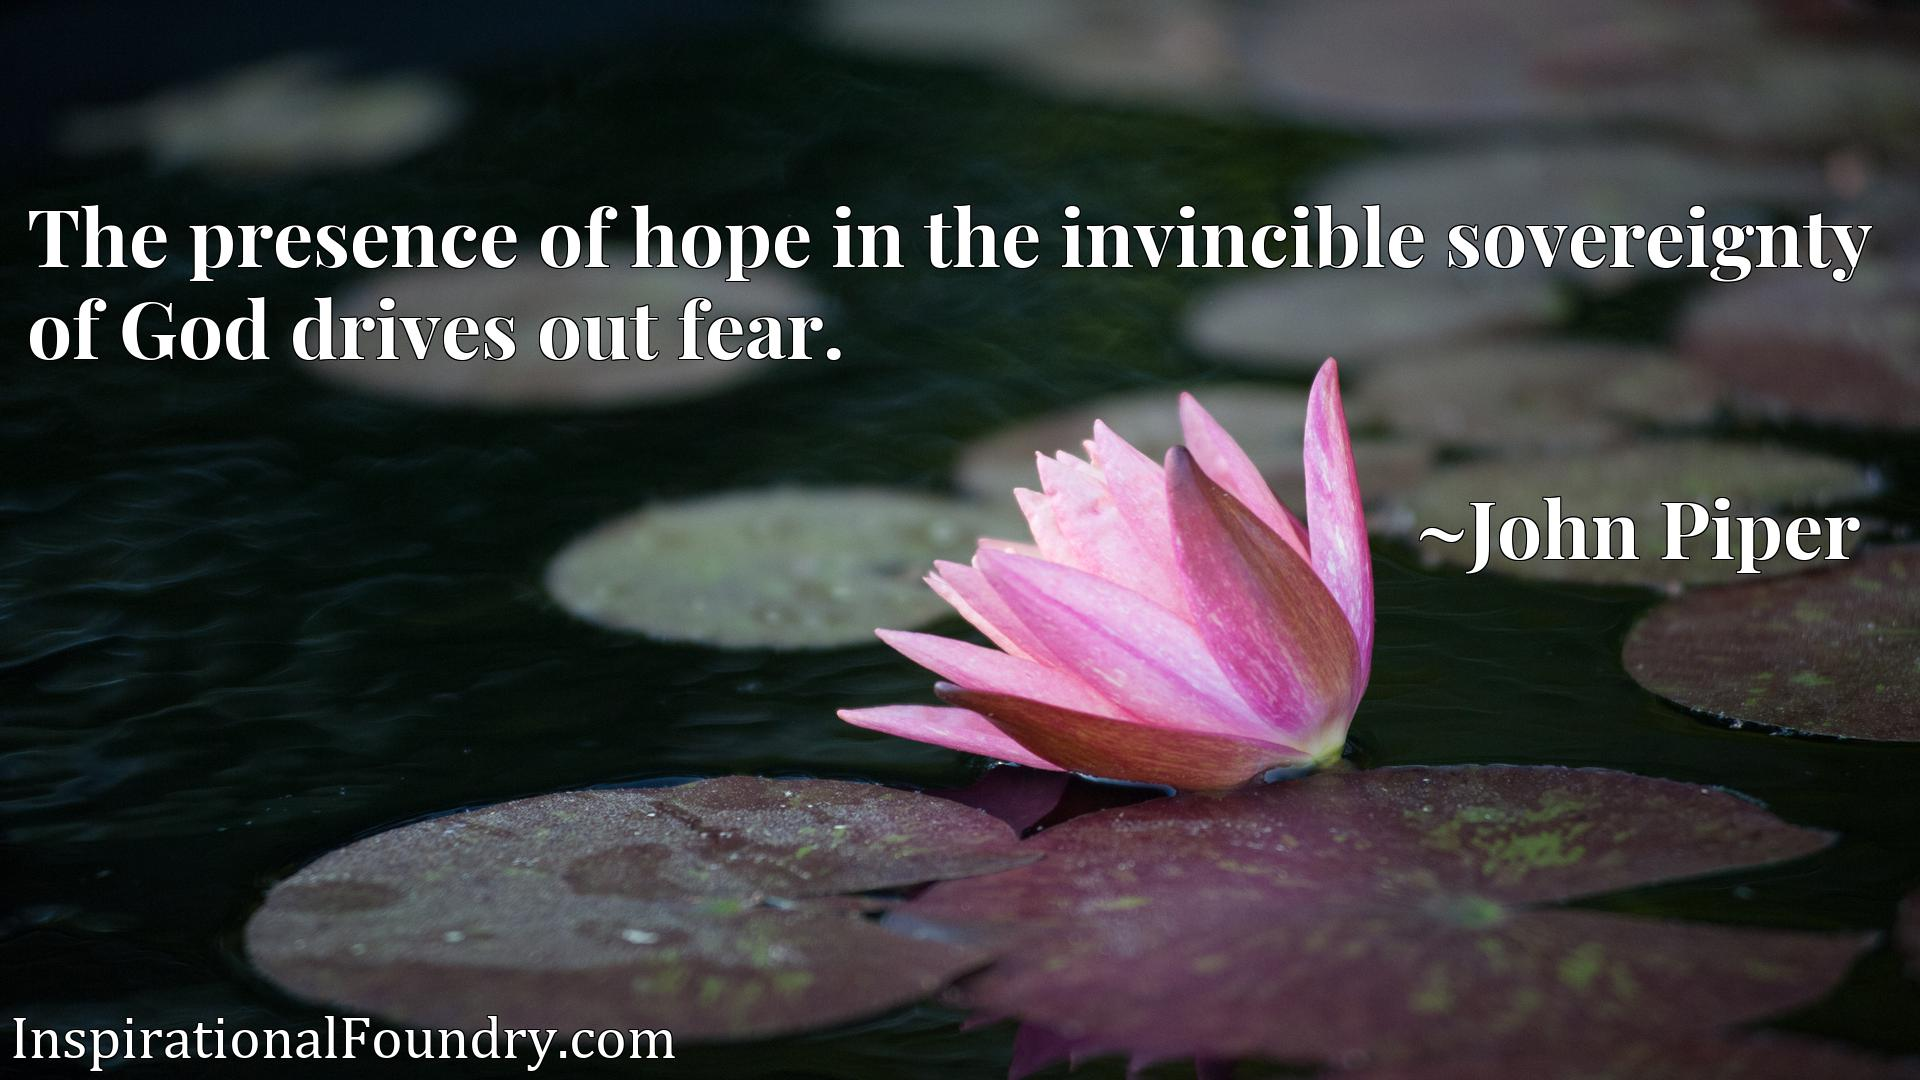 The presence of hope in the invincible sovereignty of God drives out fear.